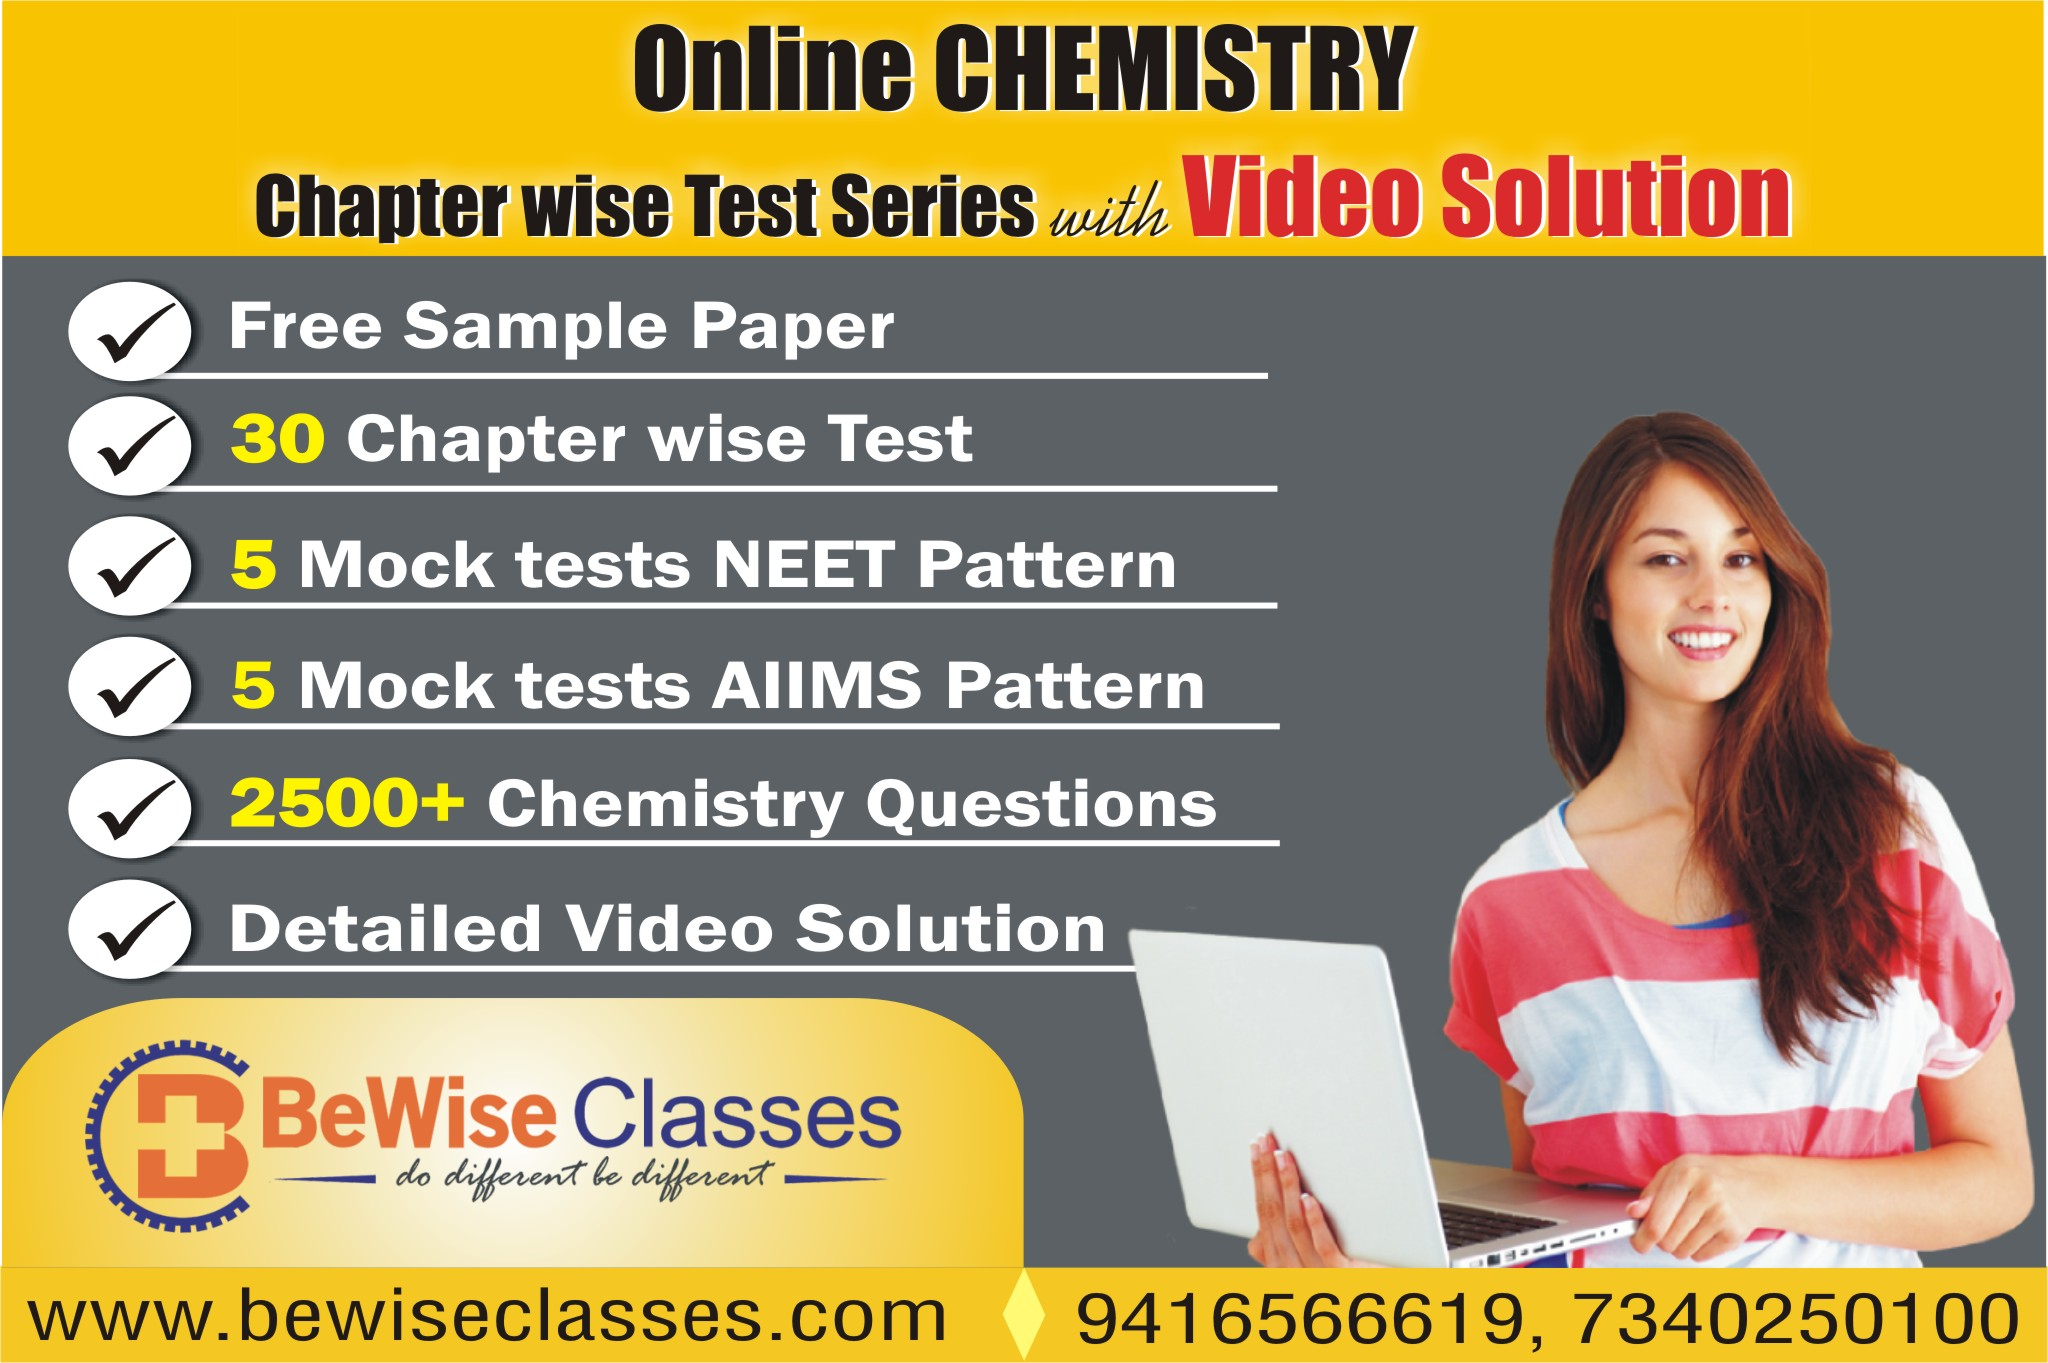 Chemistry Online Test Series (Chapter Wise) with Video Solution for NEET/AIIMS cover